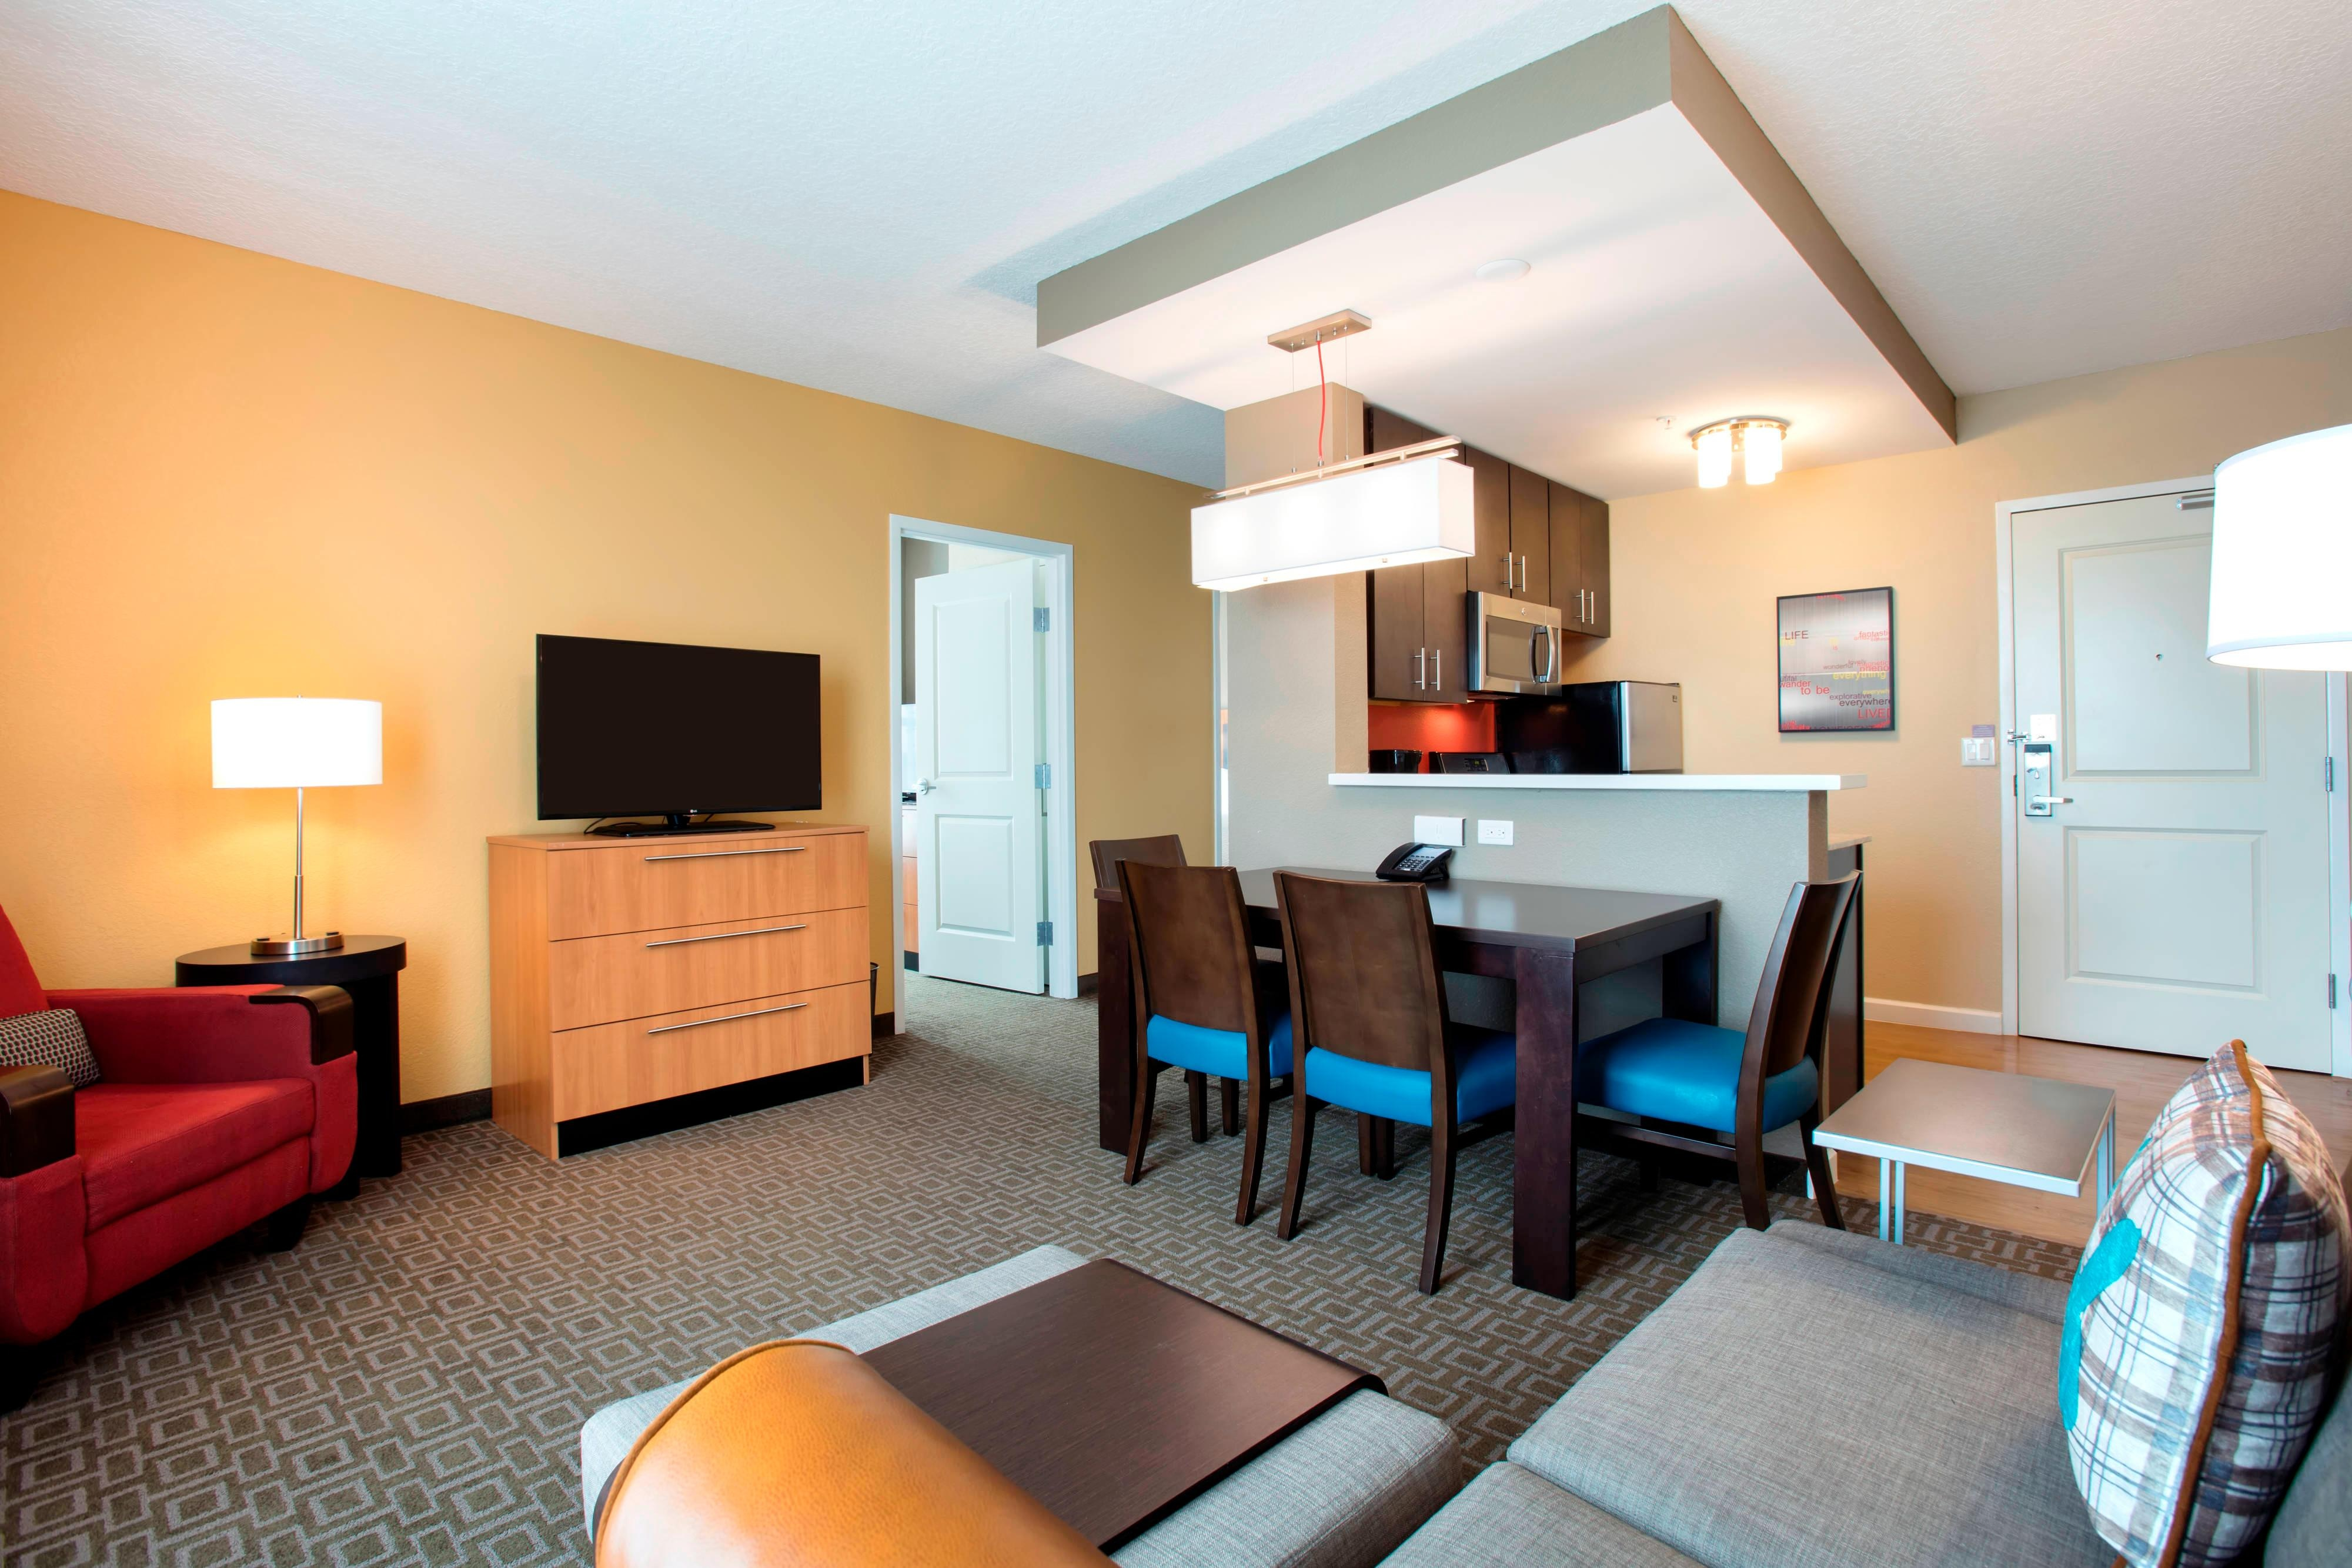 Hotel Suites Near Disney World Towneplace Suites Orlando At Flamingo Crossings